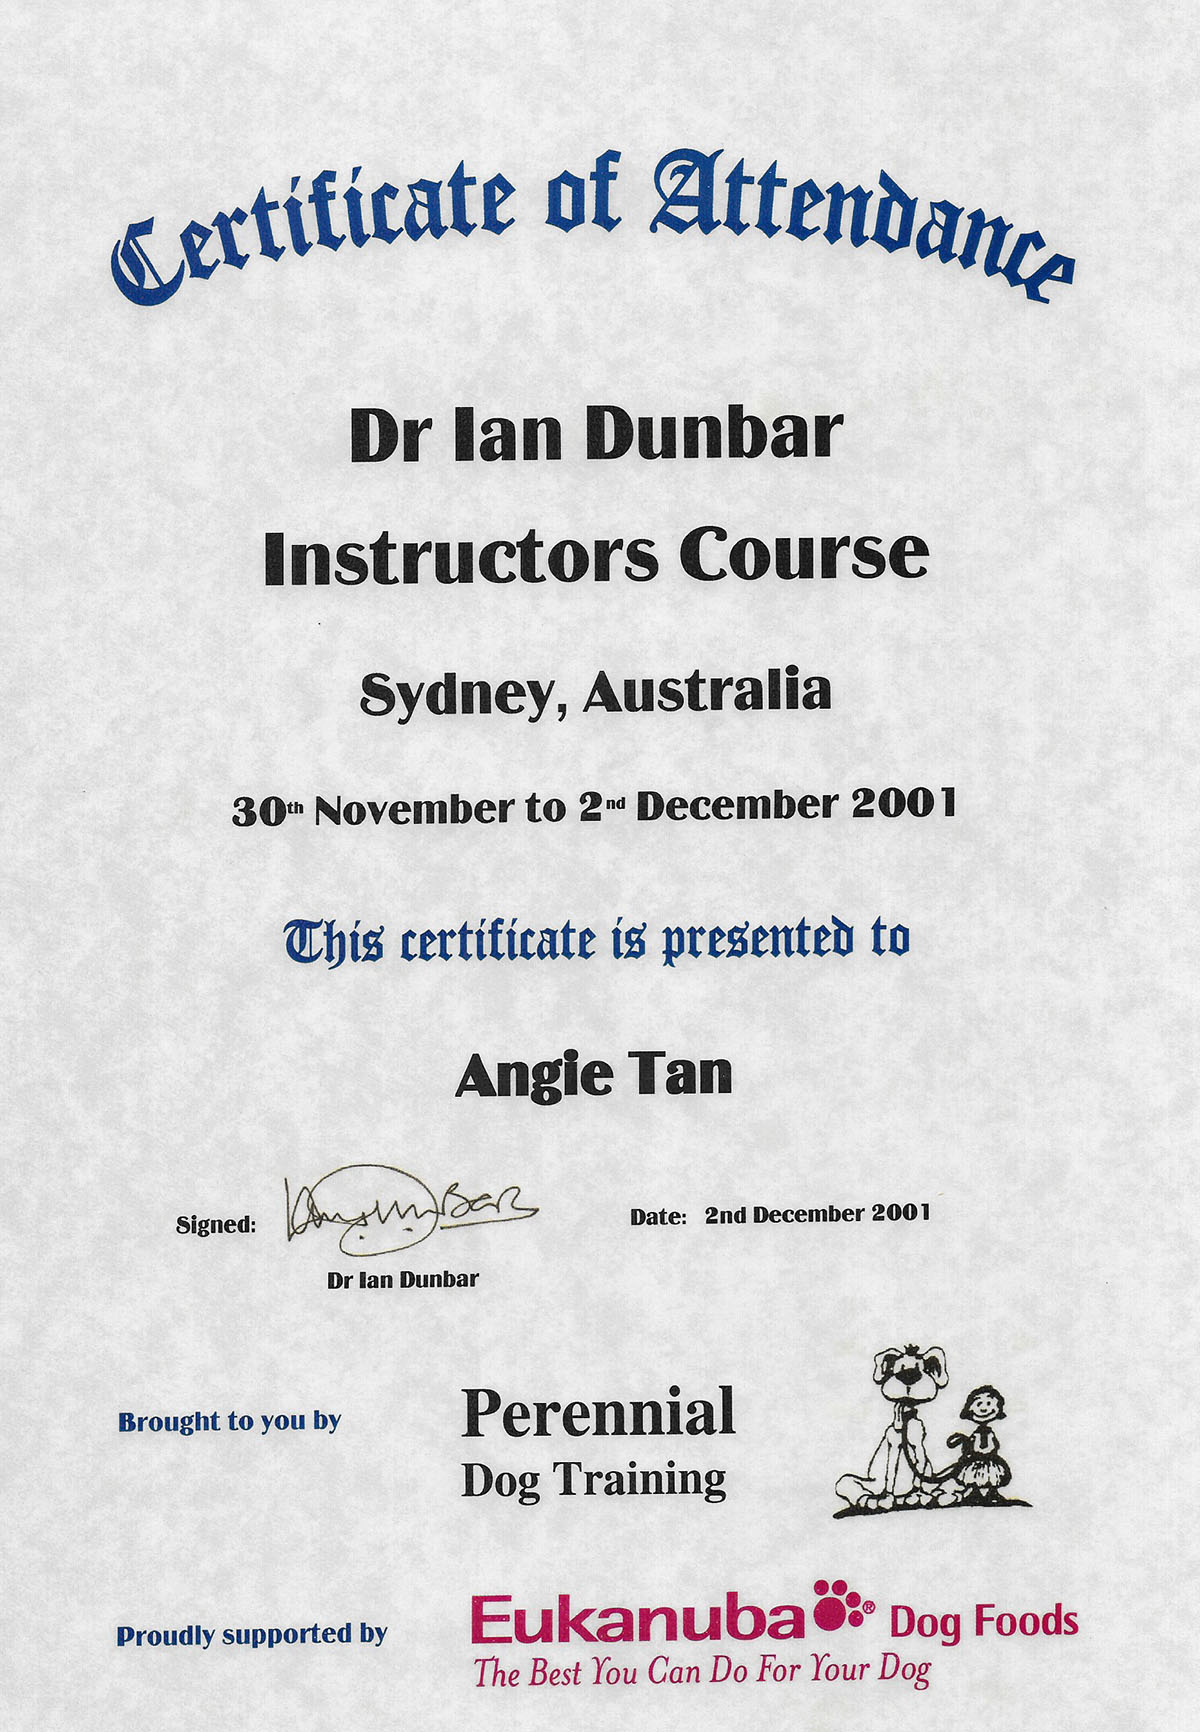 Ian Dunbar Instructors Course